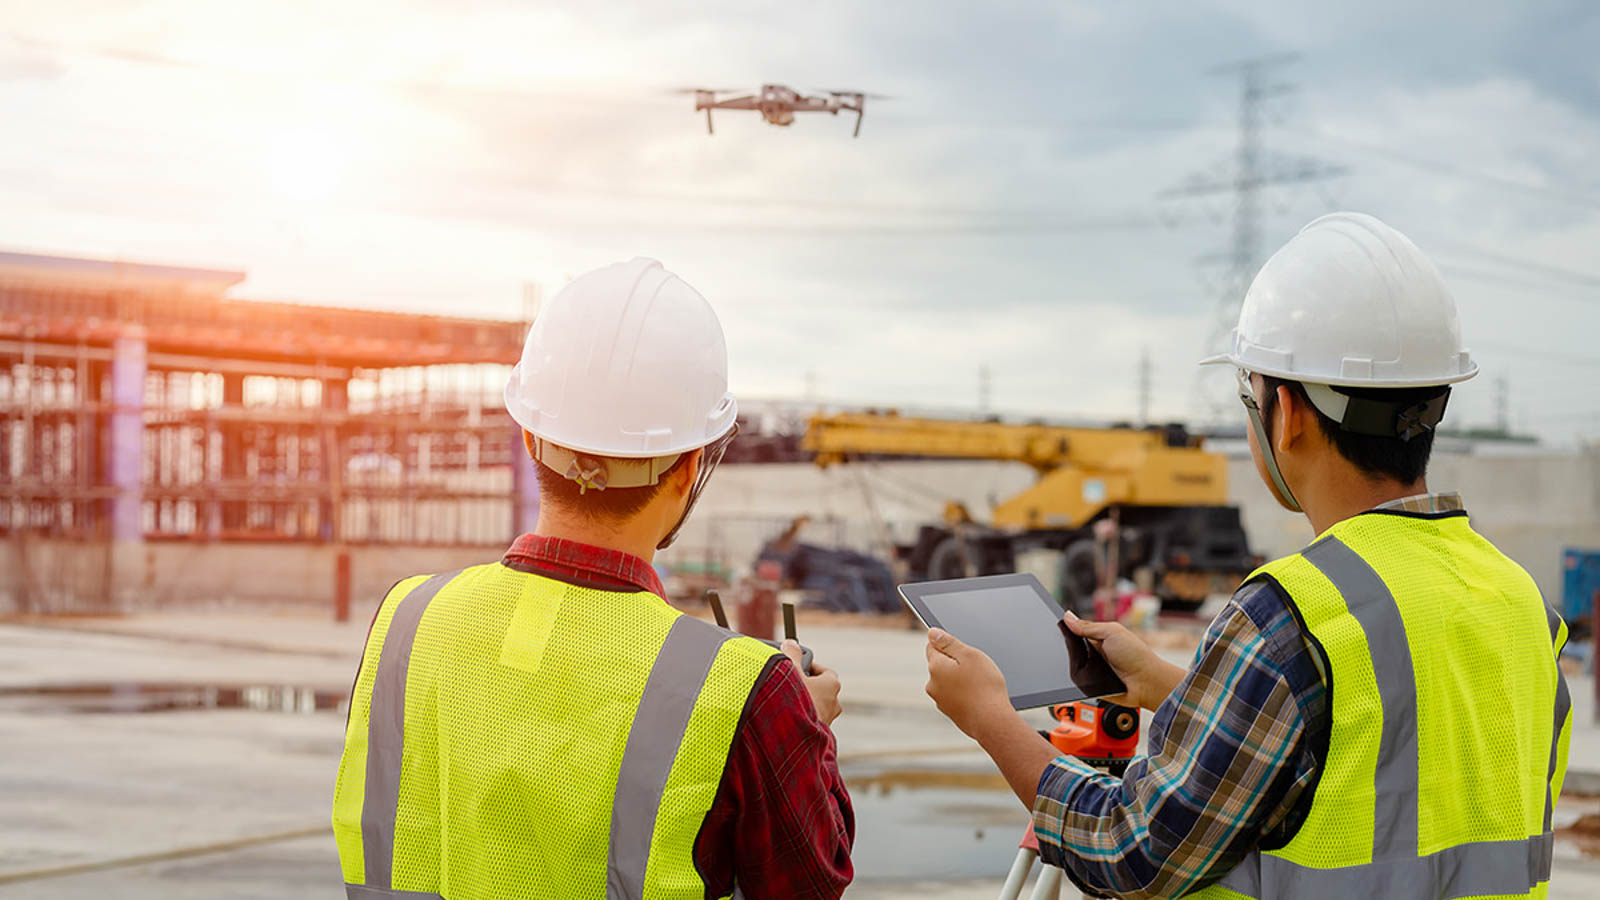 Drone operated by construction worker on building site,flying wi